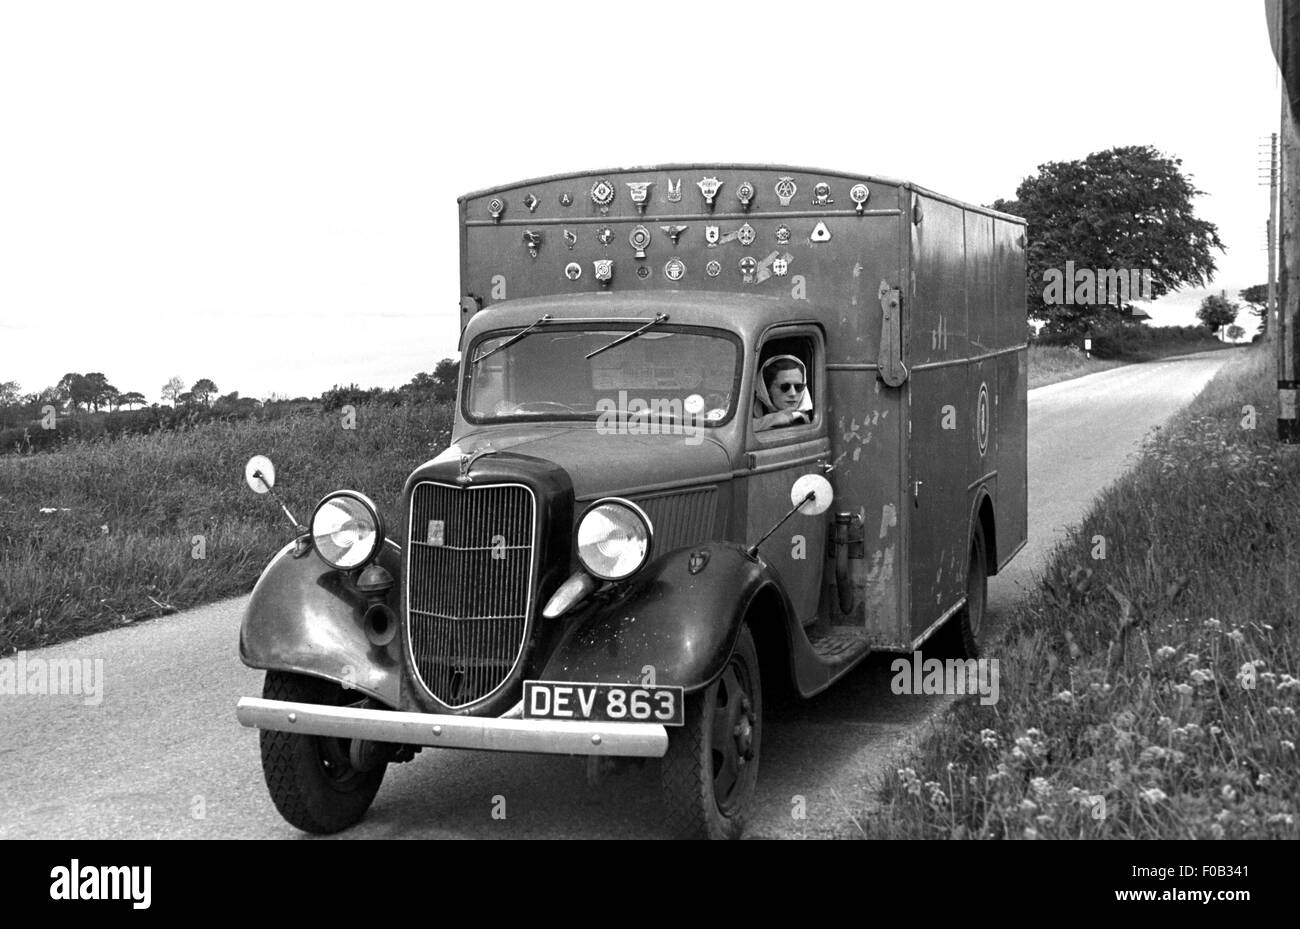 A woman leaning out of a van window parked on a country road - Stock Image